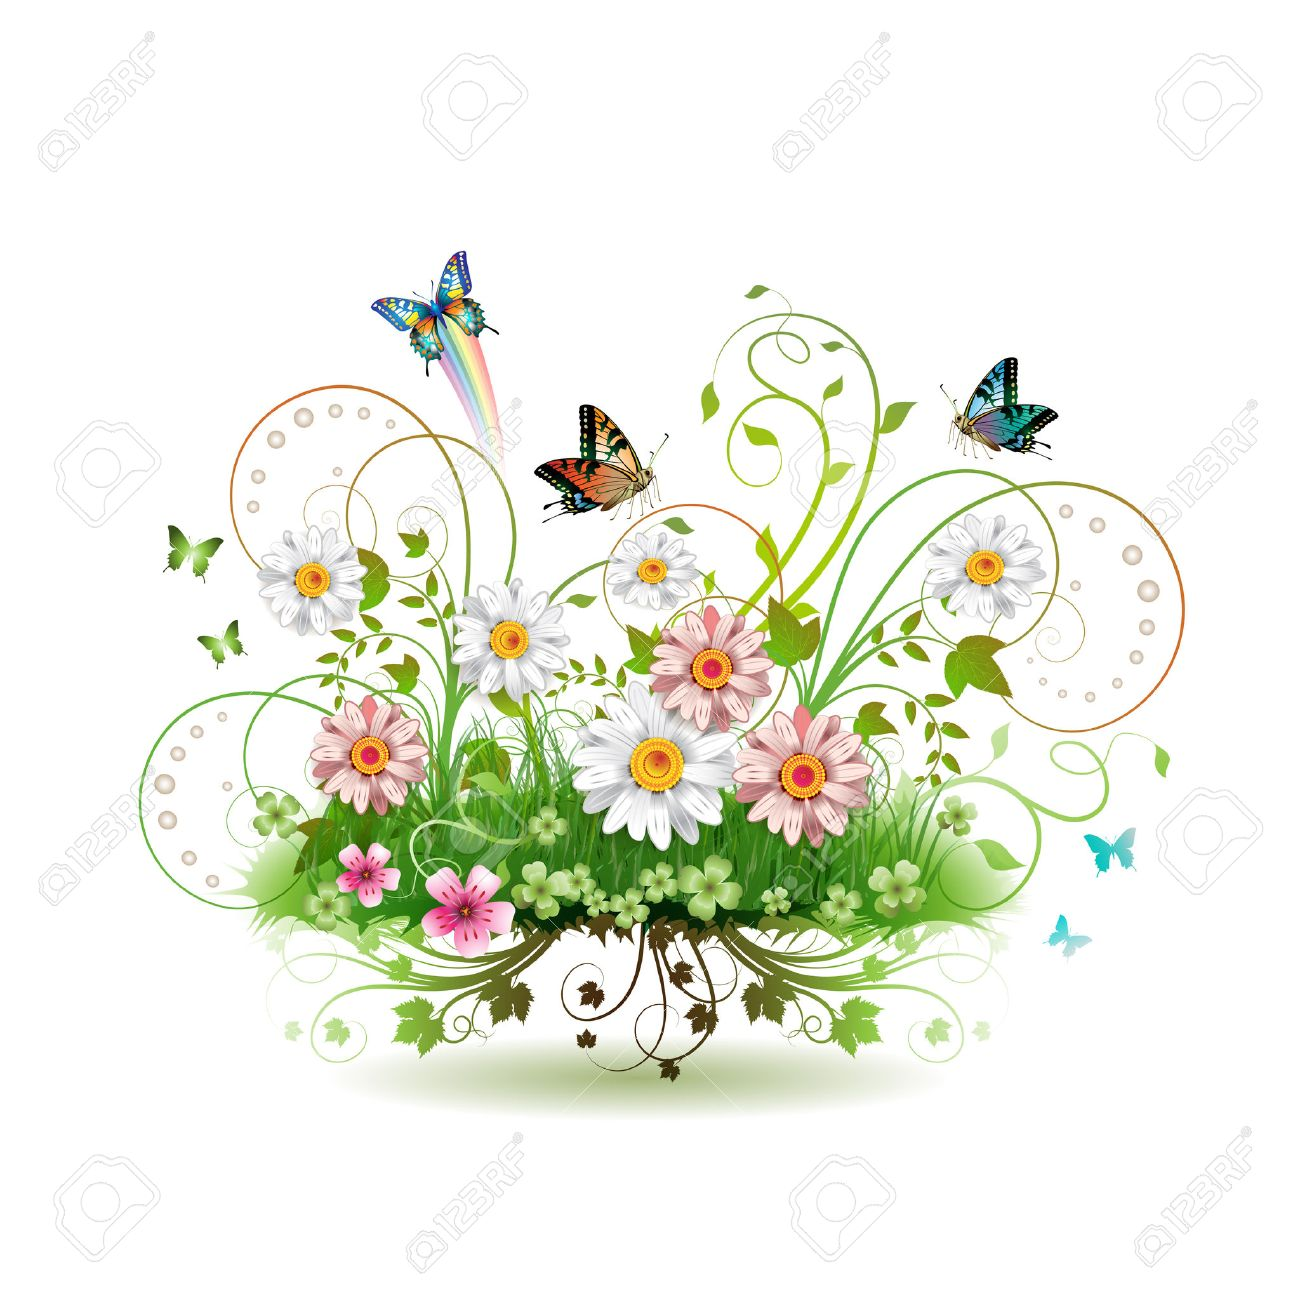 Flowers in the grass and butterflies Stock Vector - 8804154